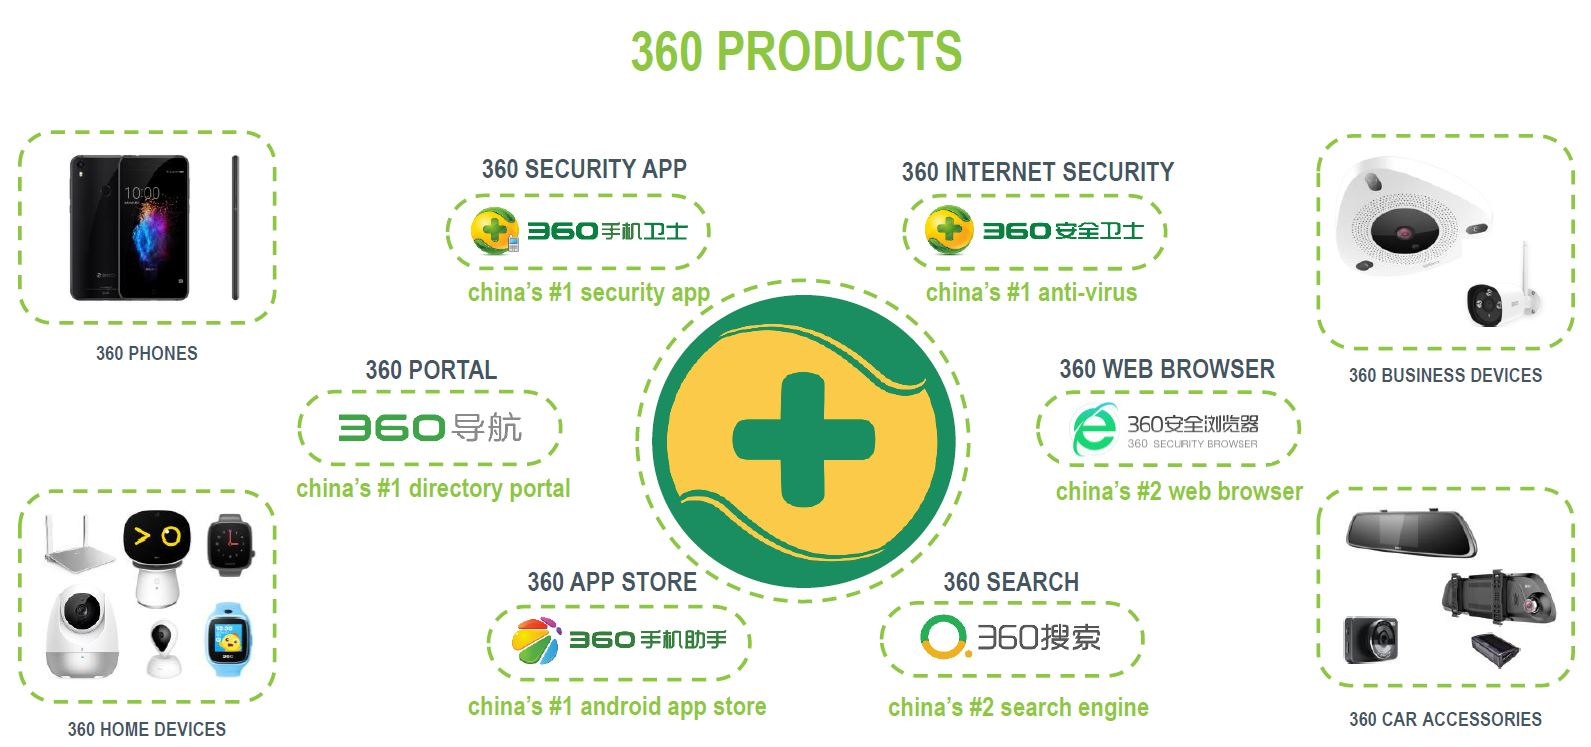 360 Search SEM and products